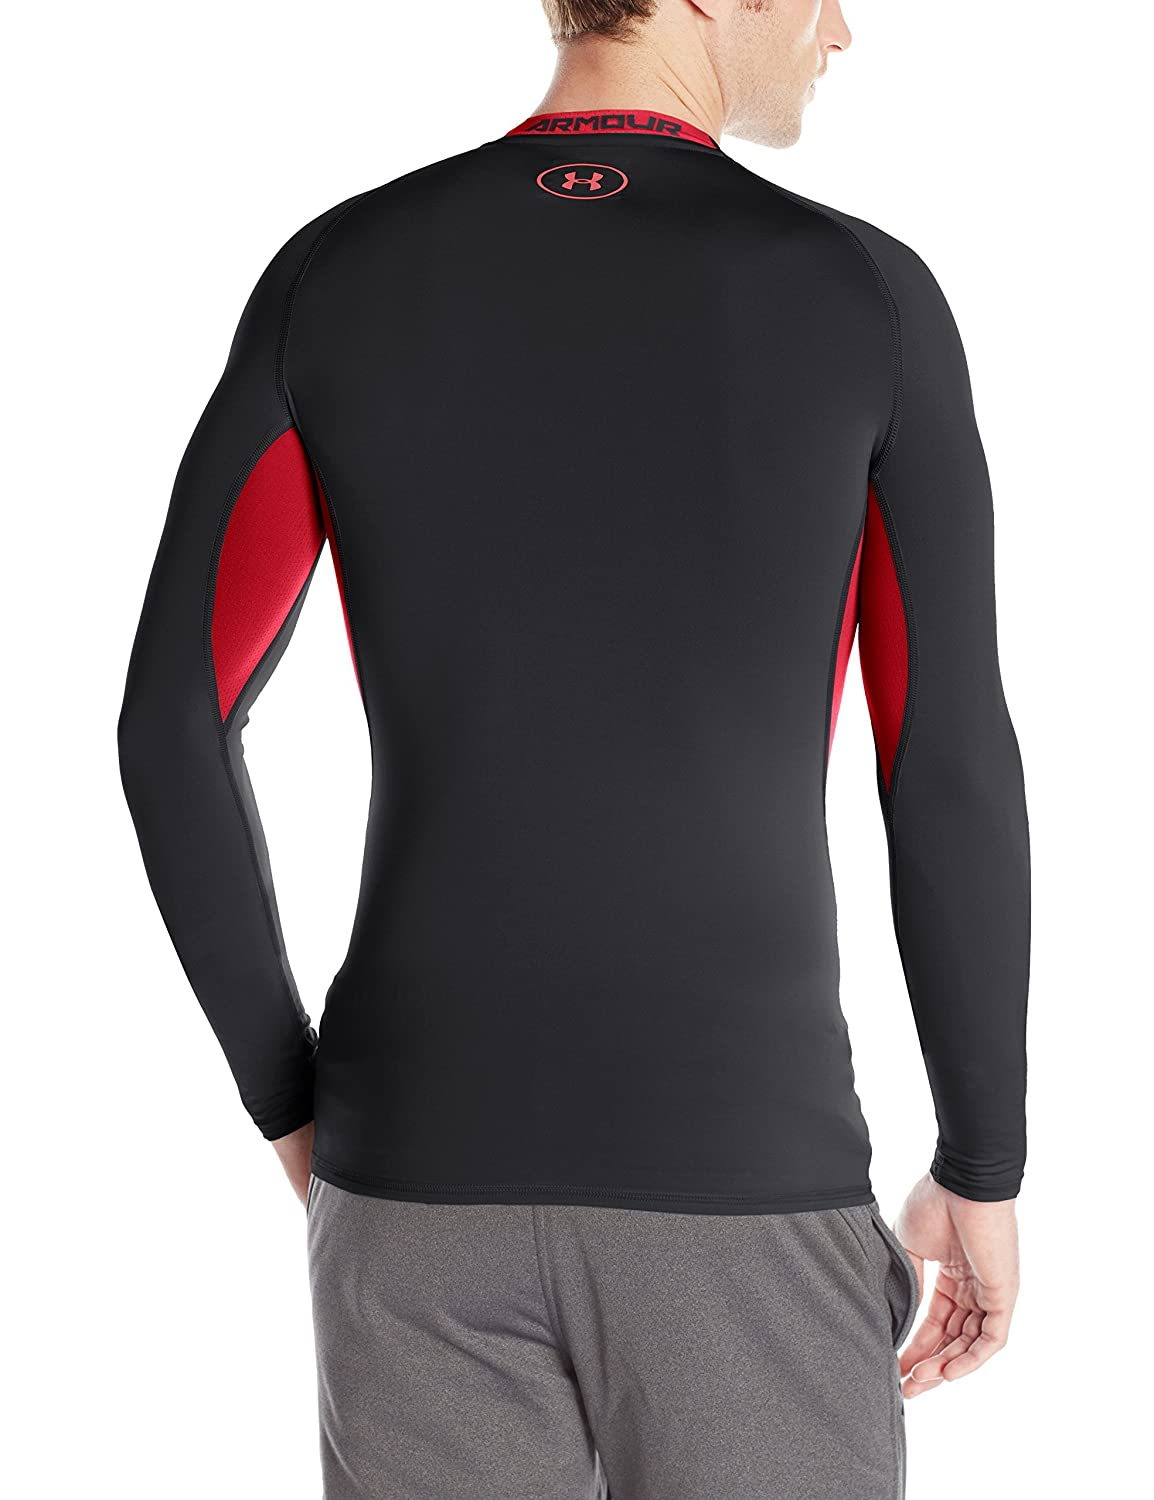 25a1592c208 Under Armour Mens Long Sleeve Compression Shirt - BCD Tofu House